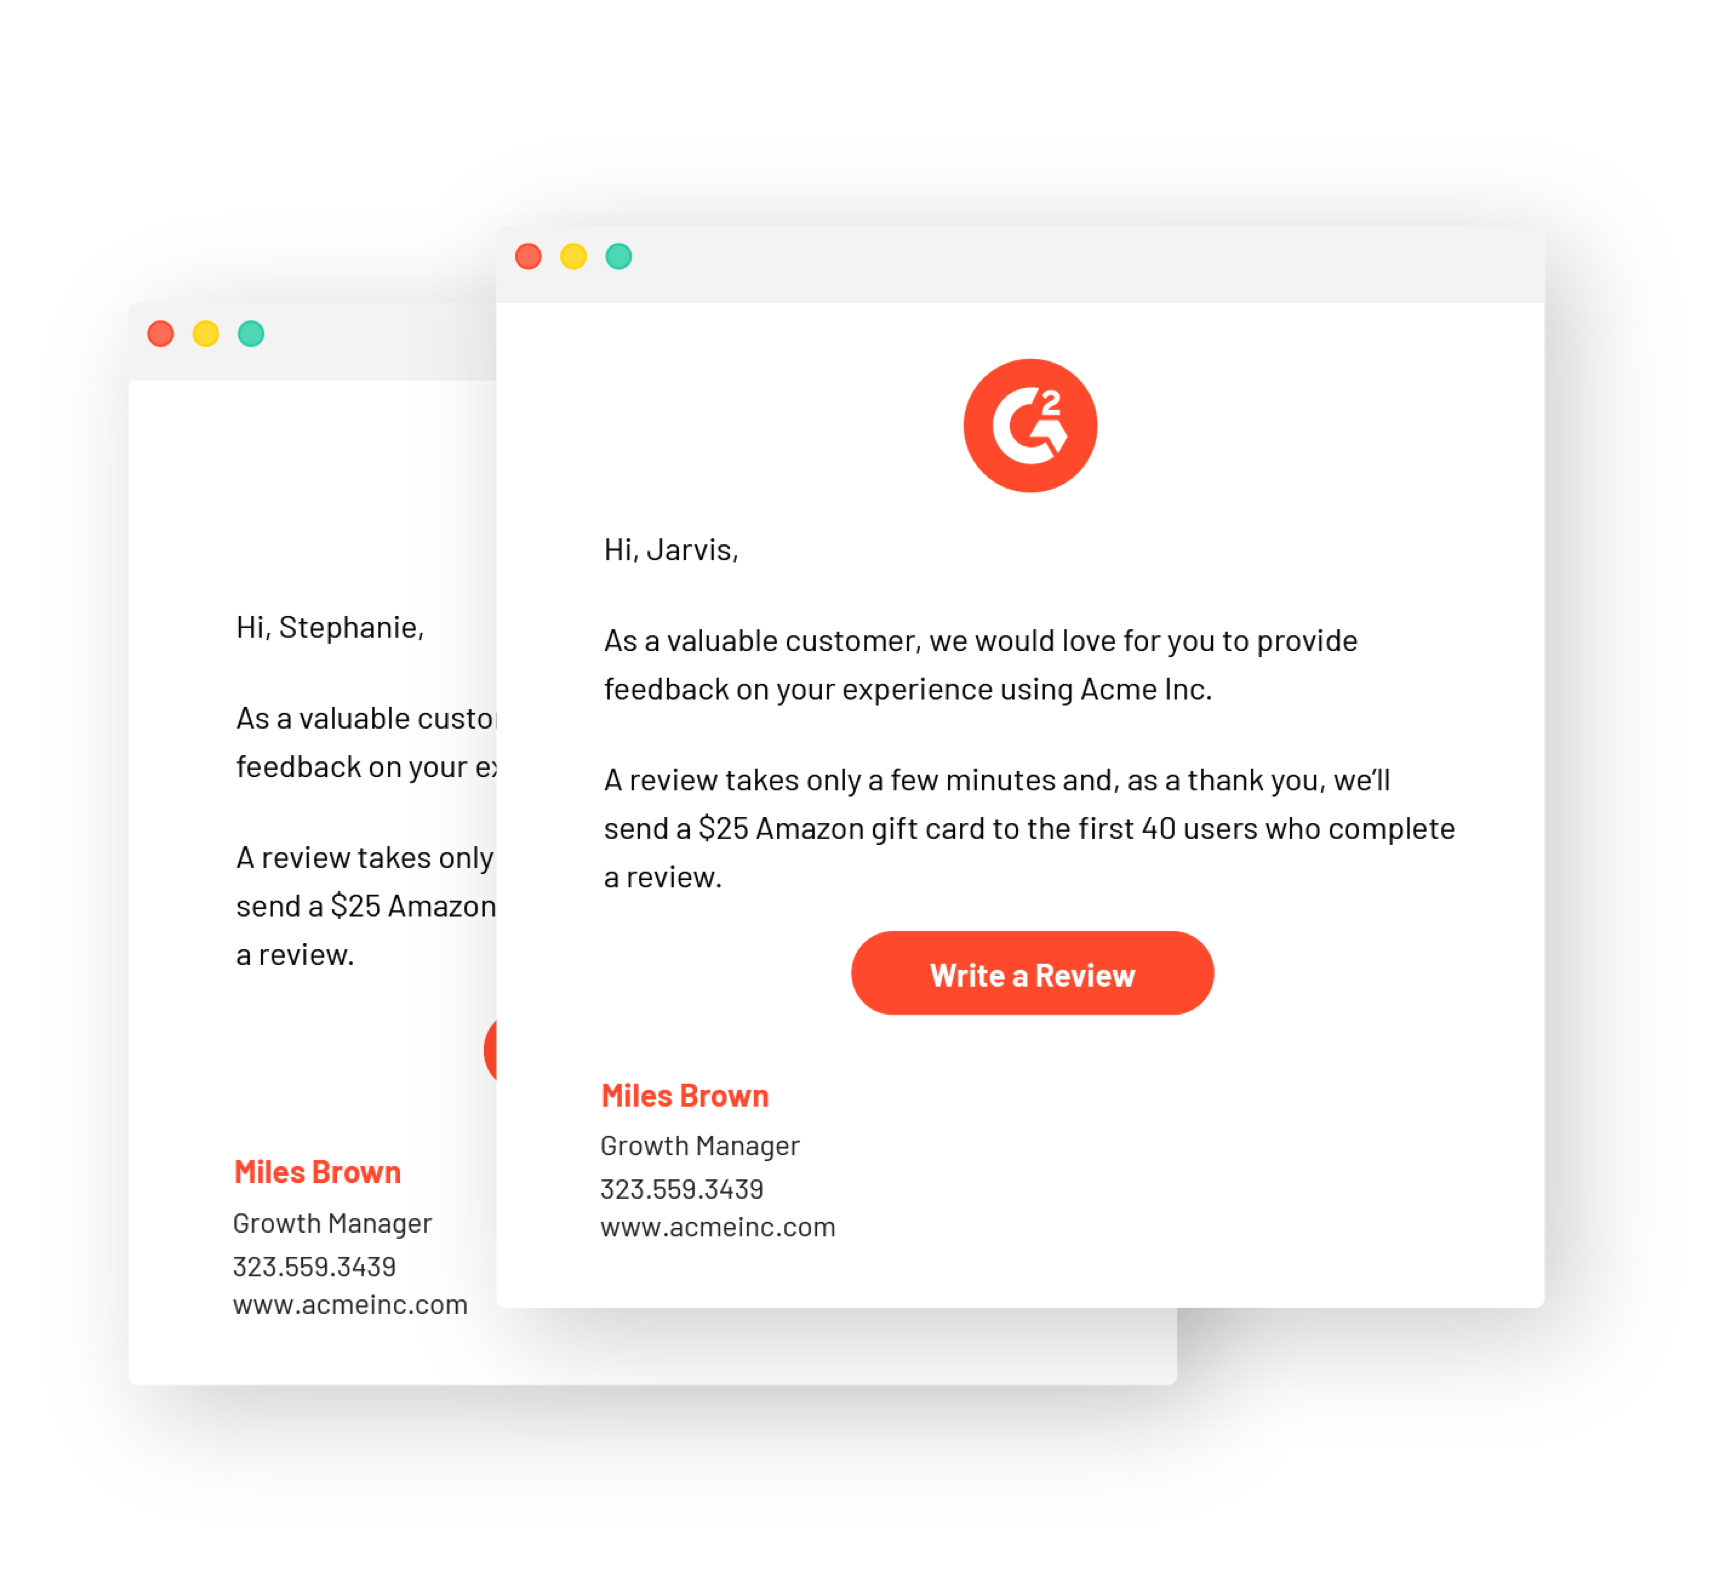 g2-sell-review-generation-screenshot-review-email-2